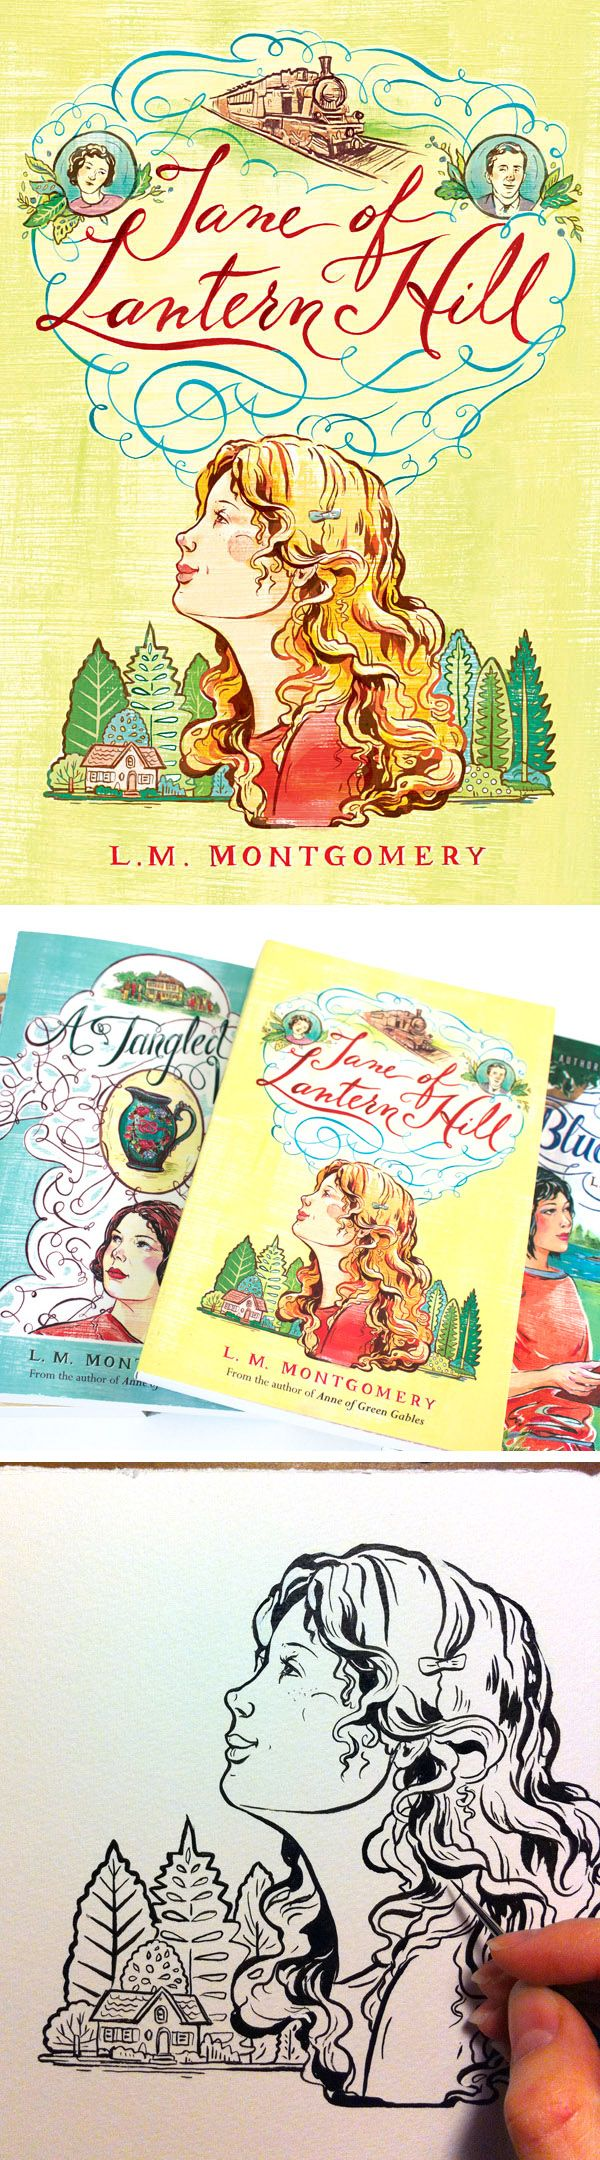 Illustrated Book Cover Photos ~ Best images about illustrated book covers on pinterest